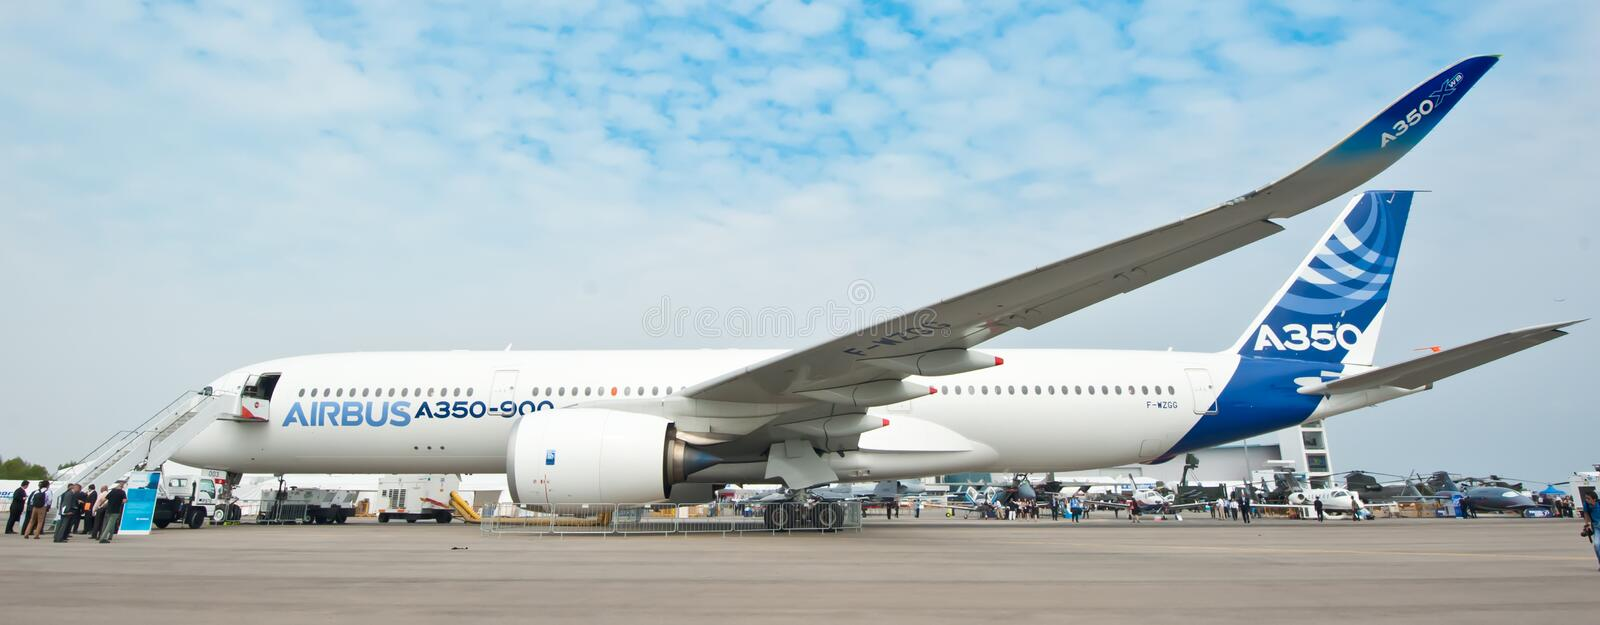 Airbus A350-900 at the Singapore Airshow 2014. The all new Airbus A350-900, Airbus' newest plane, on the tarmac at the Singapore Airshow 2014 royalty free stock image